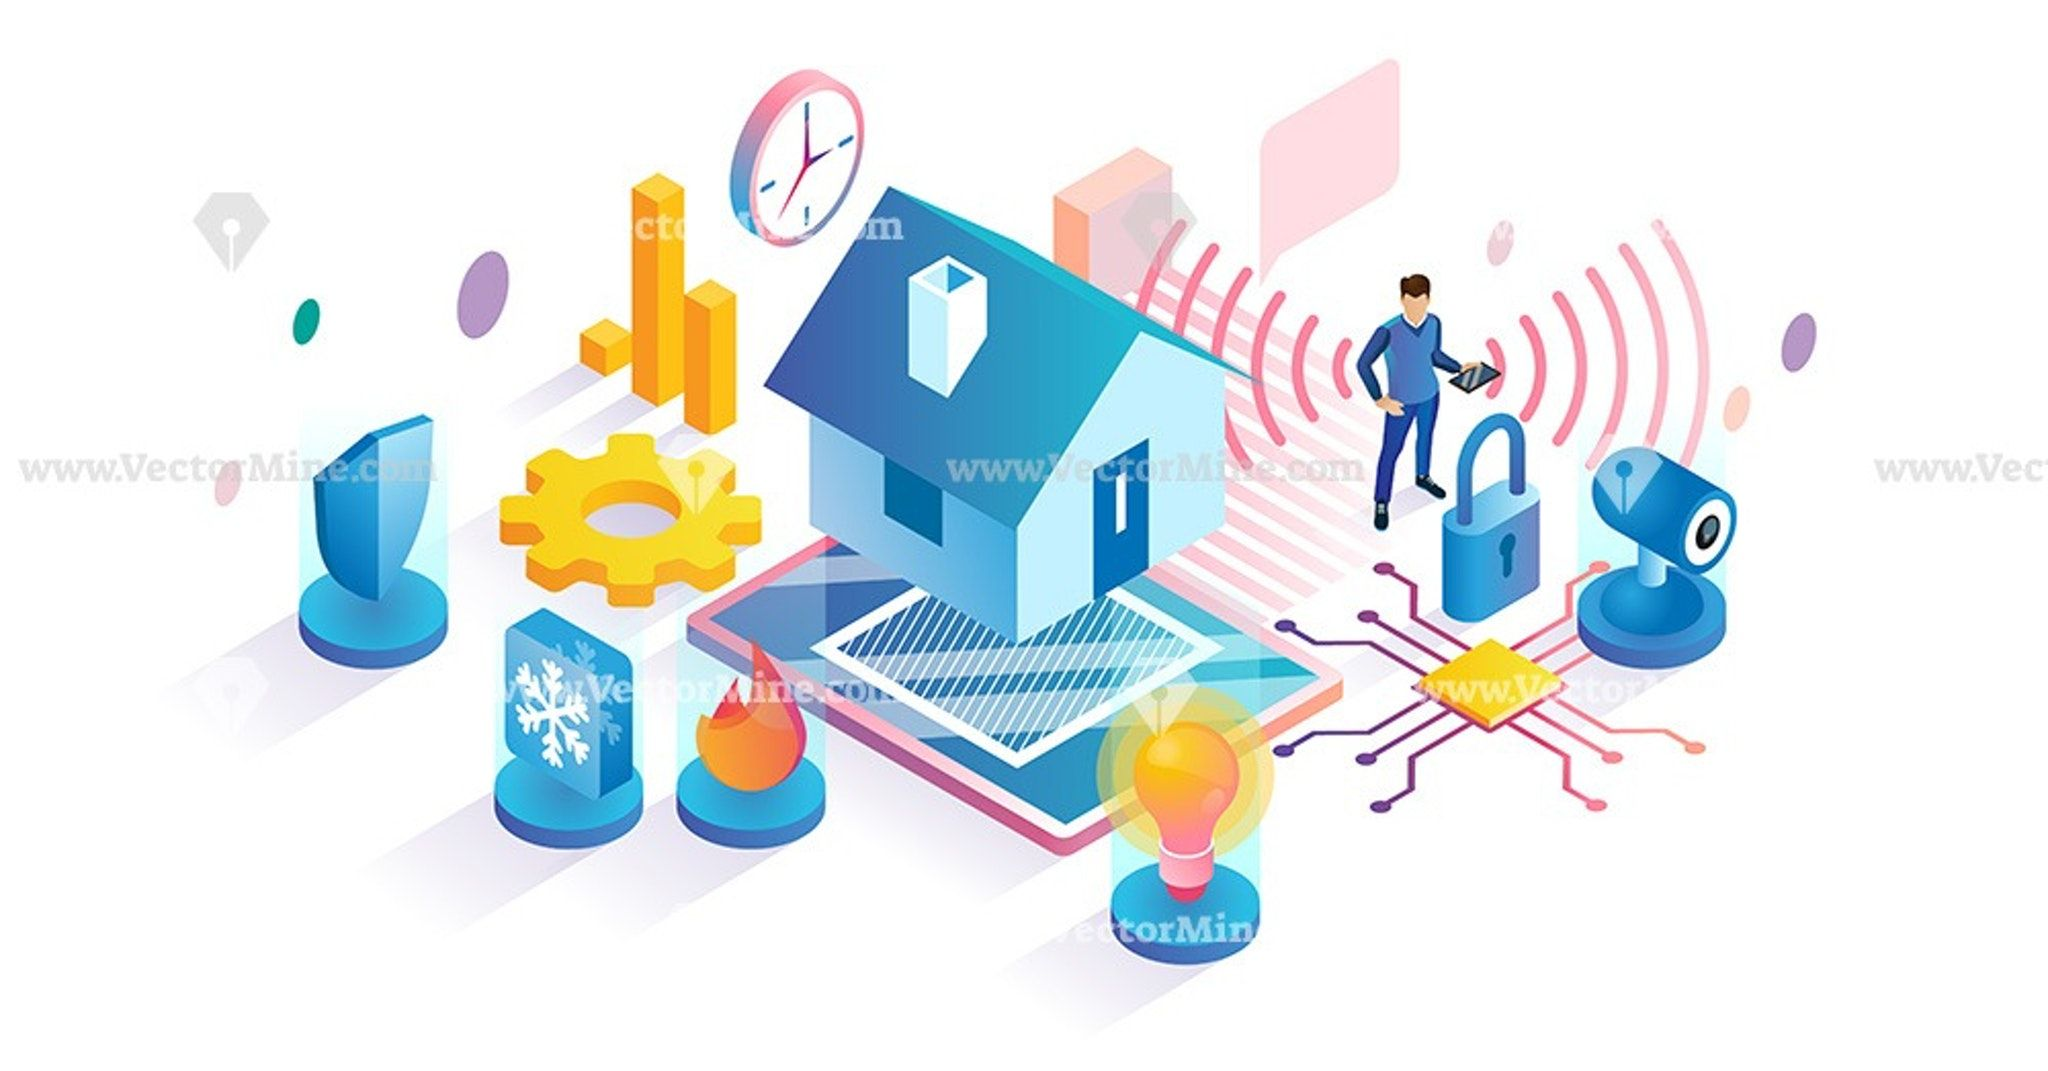 Smart home isometric vector illustration concept in 2020